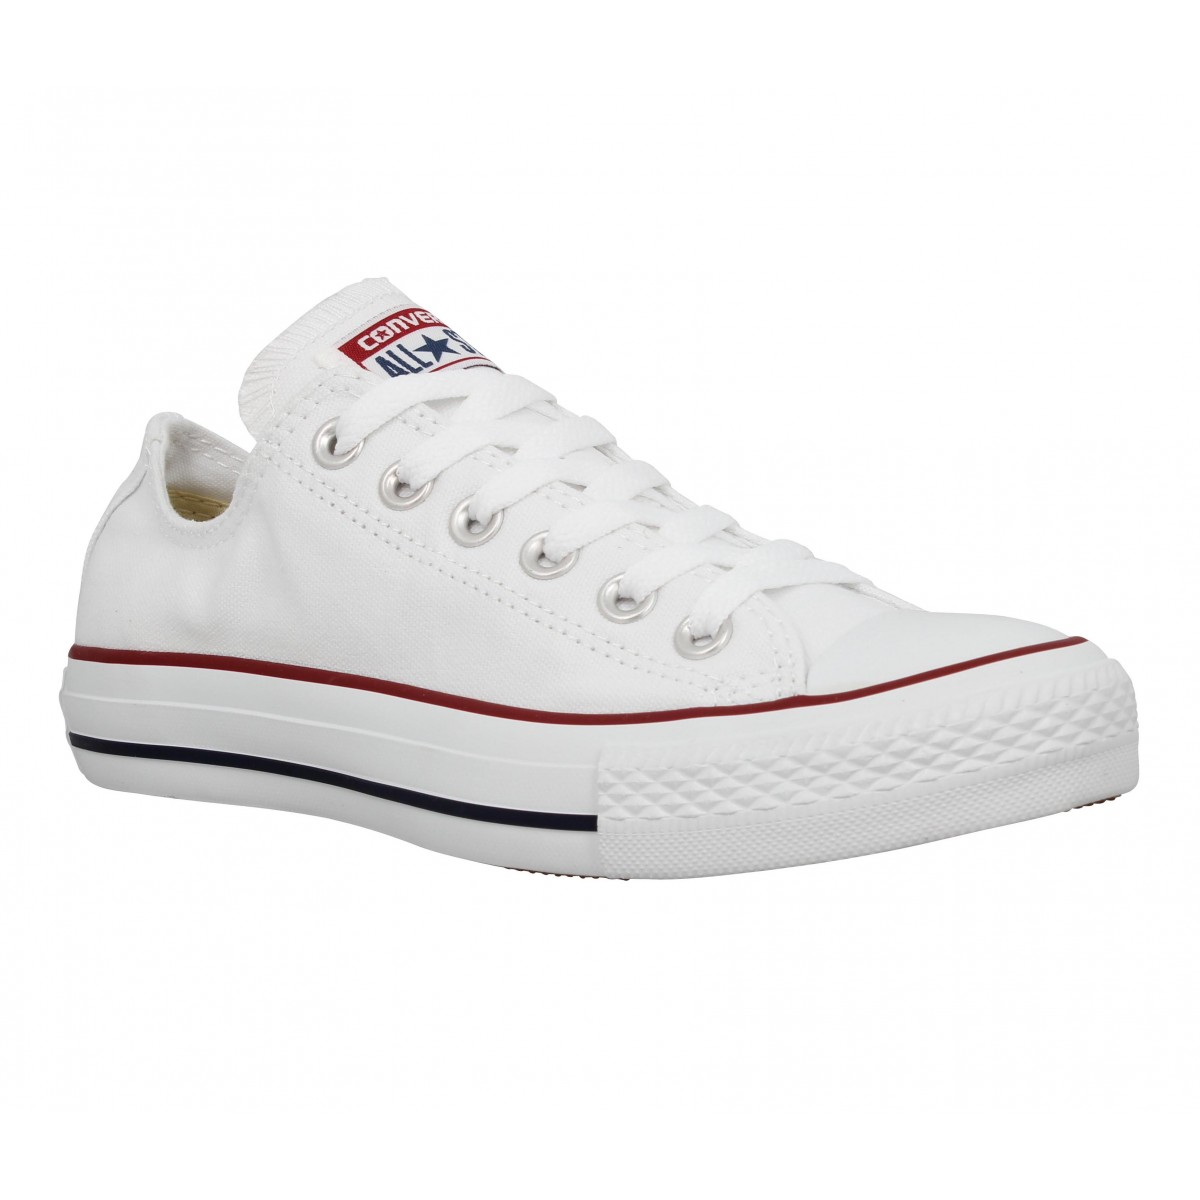 Baskets CONVERSE Chuck Taylor All Star toile Femme Blanc